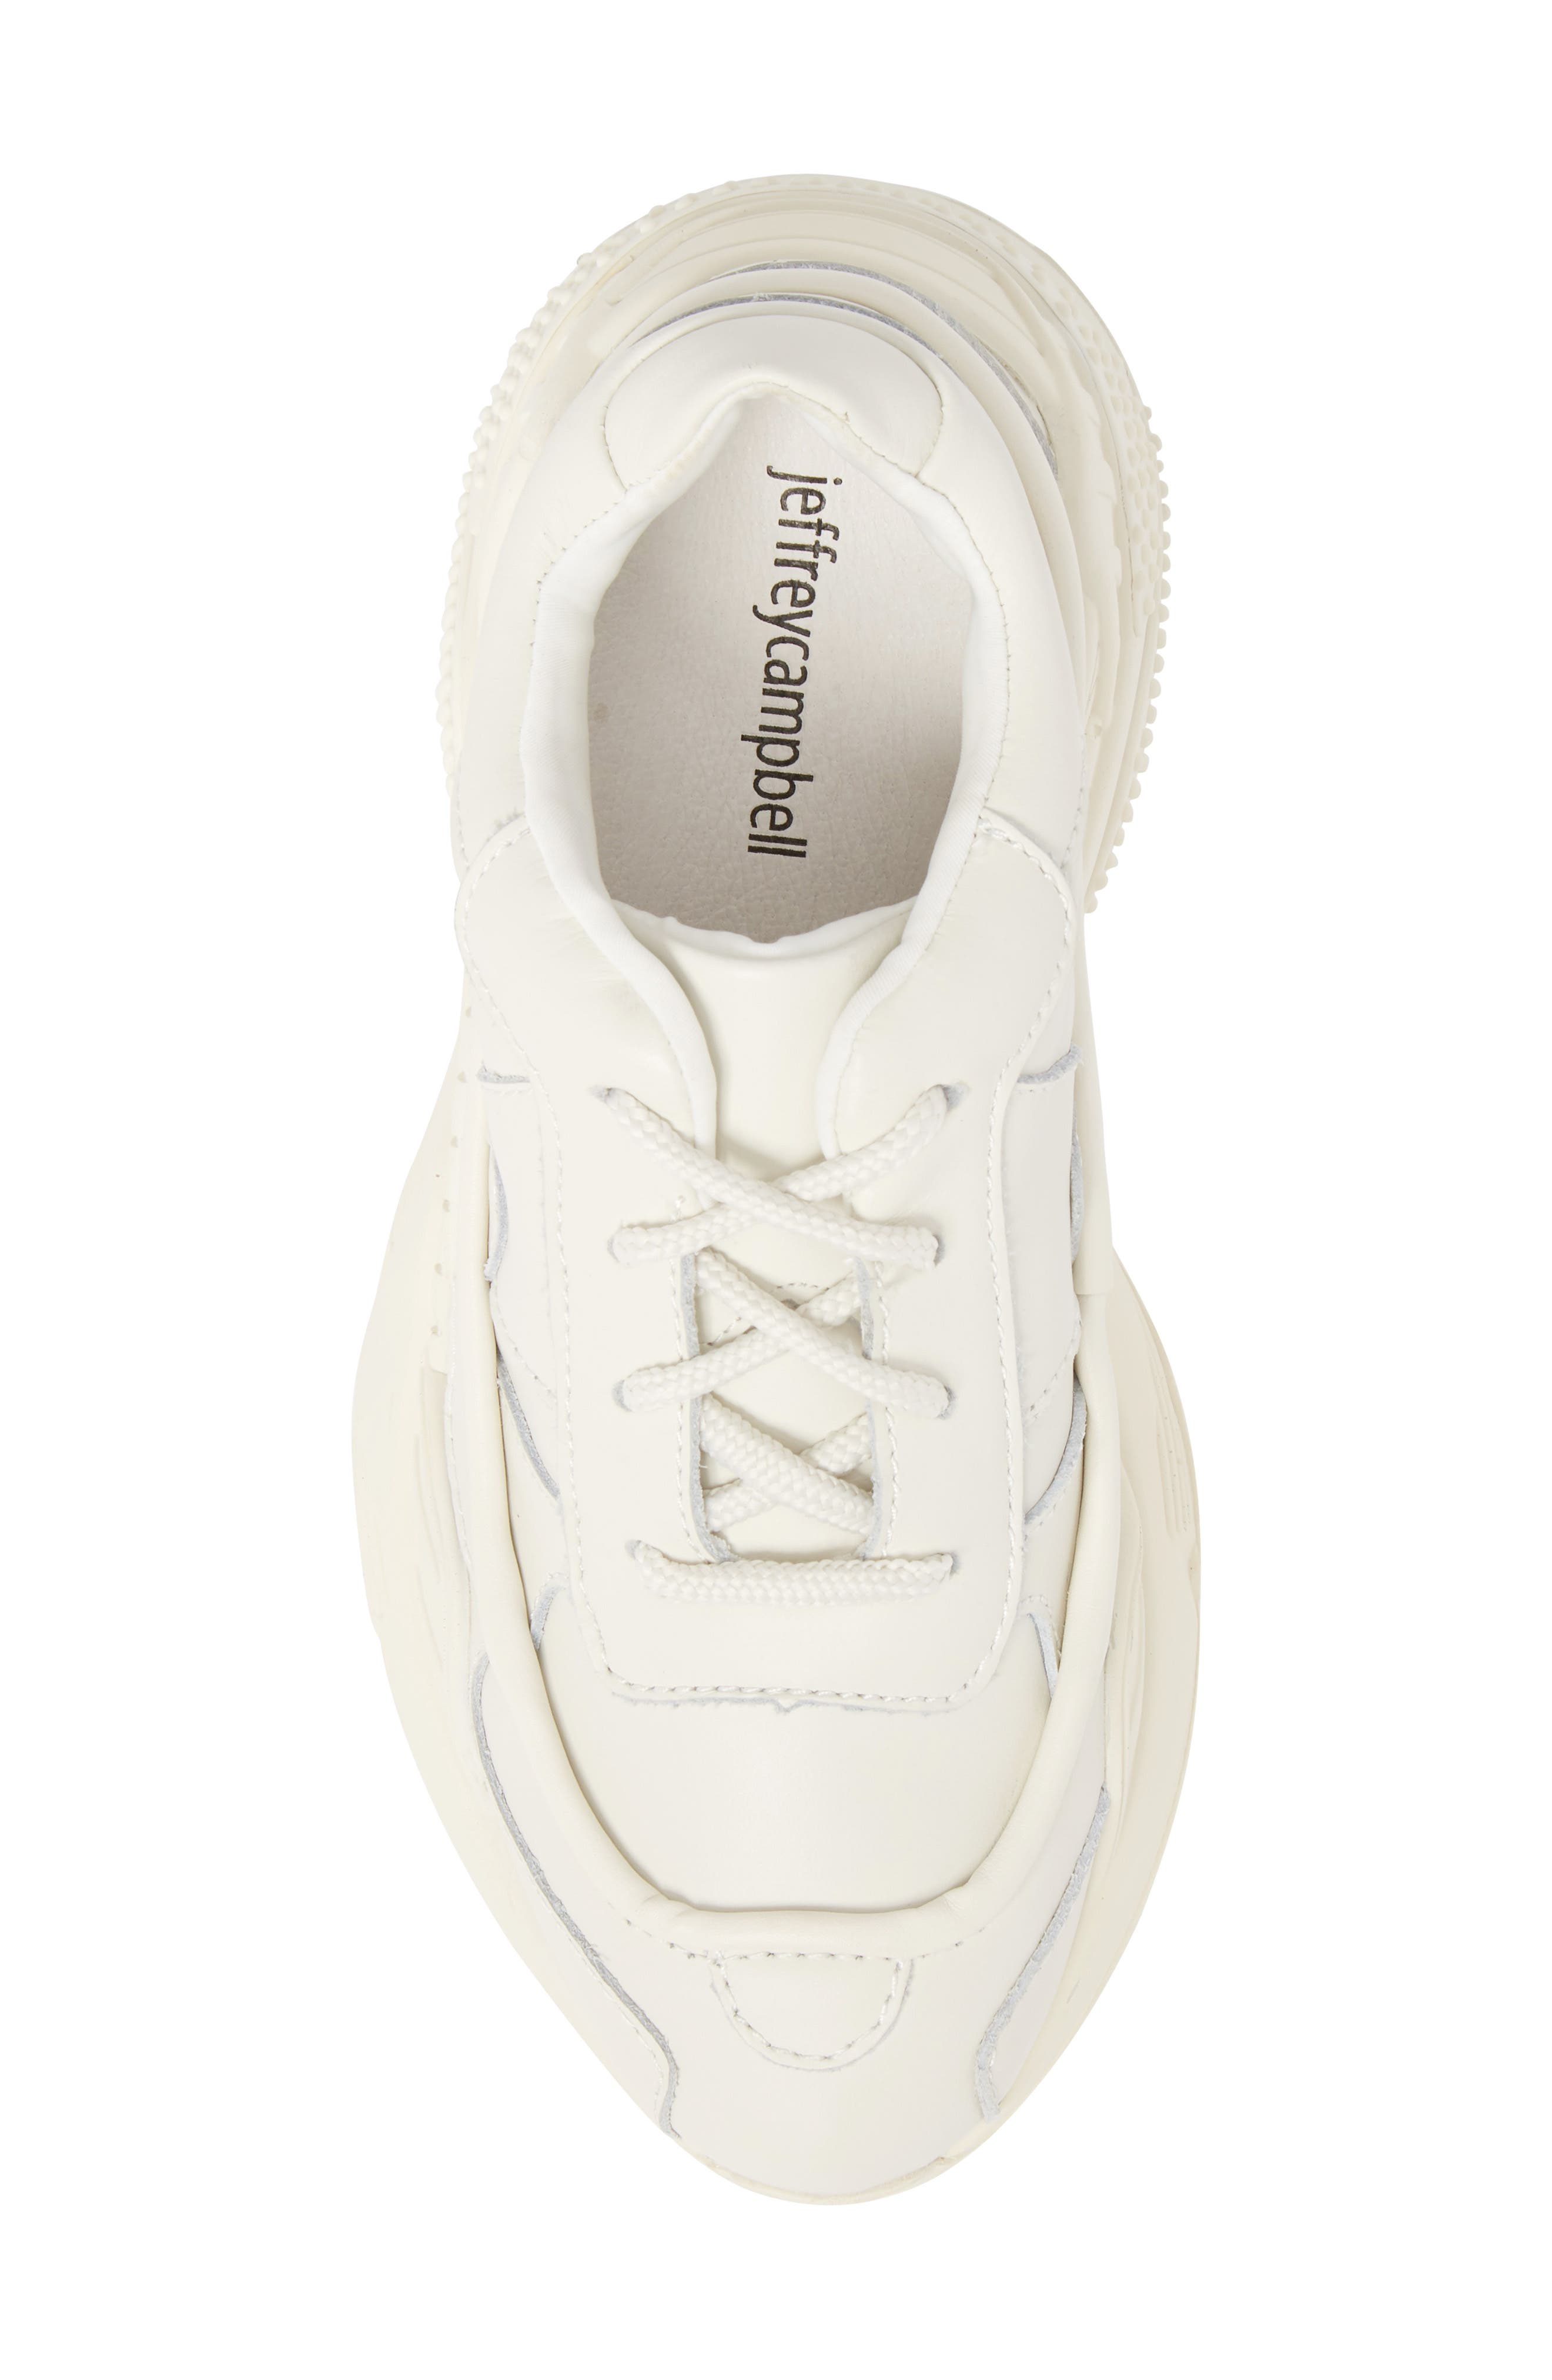 HMDI Platform Sneaker,                             Alternate thumbnail 5, color,                             WHITE LEATHER